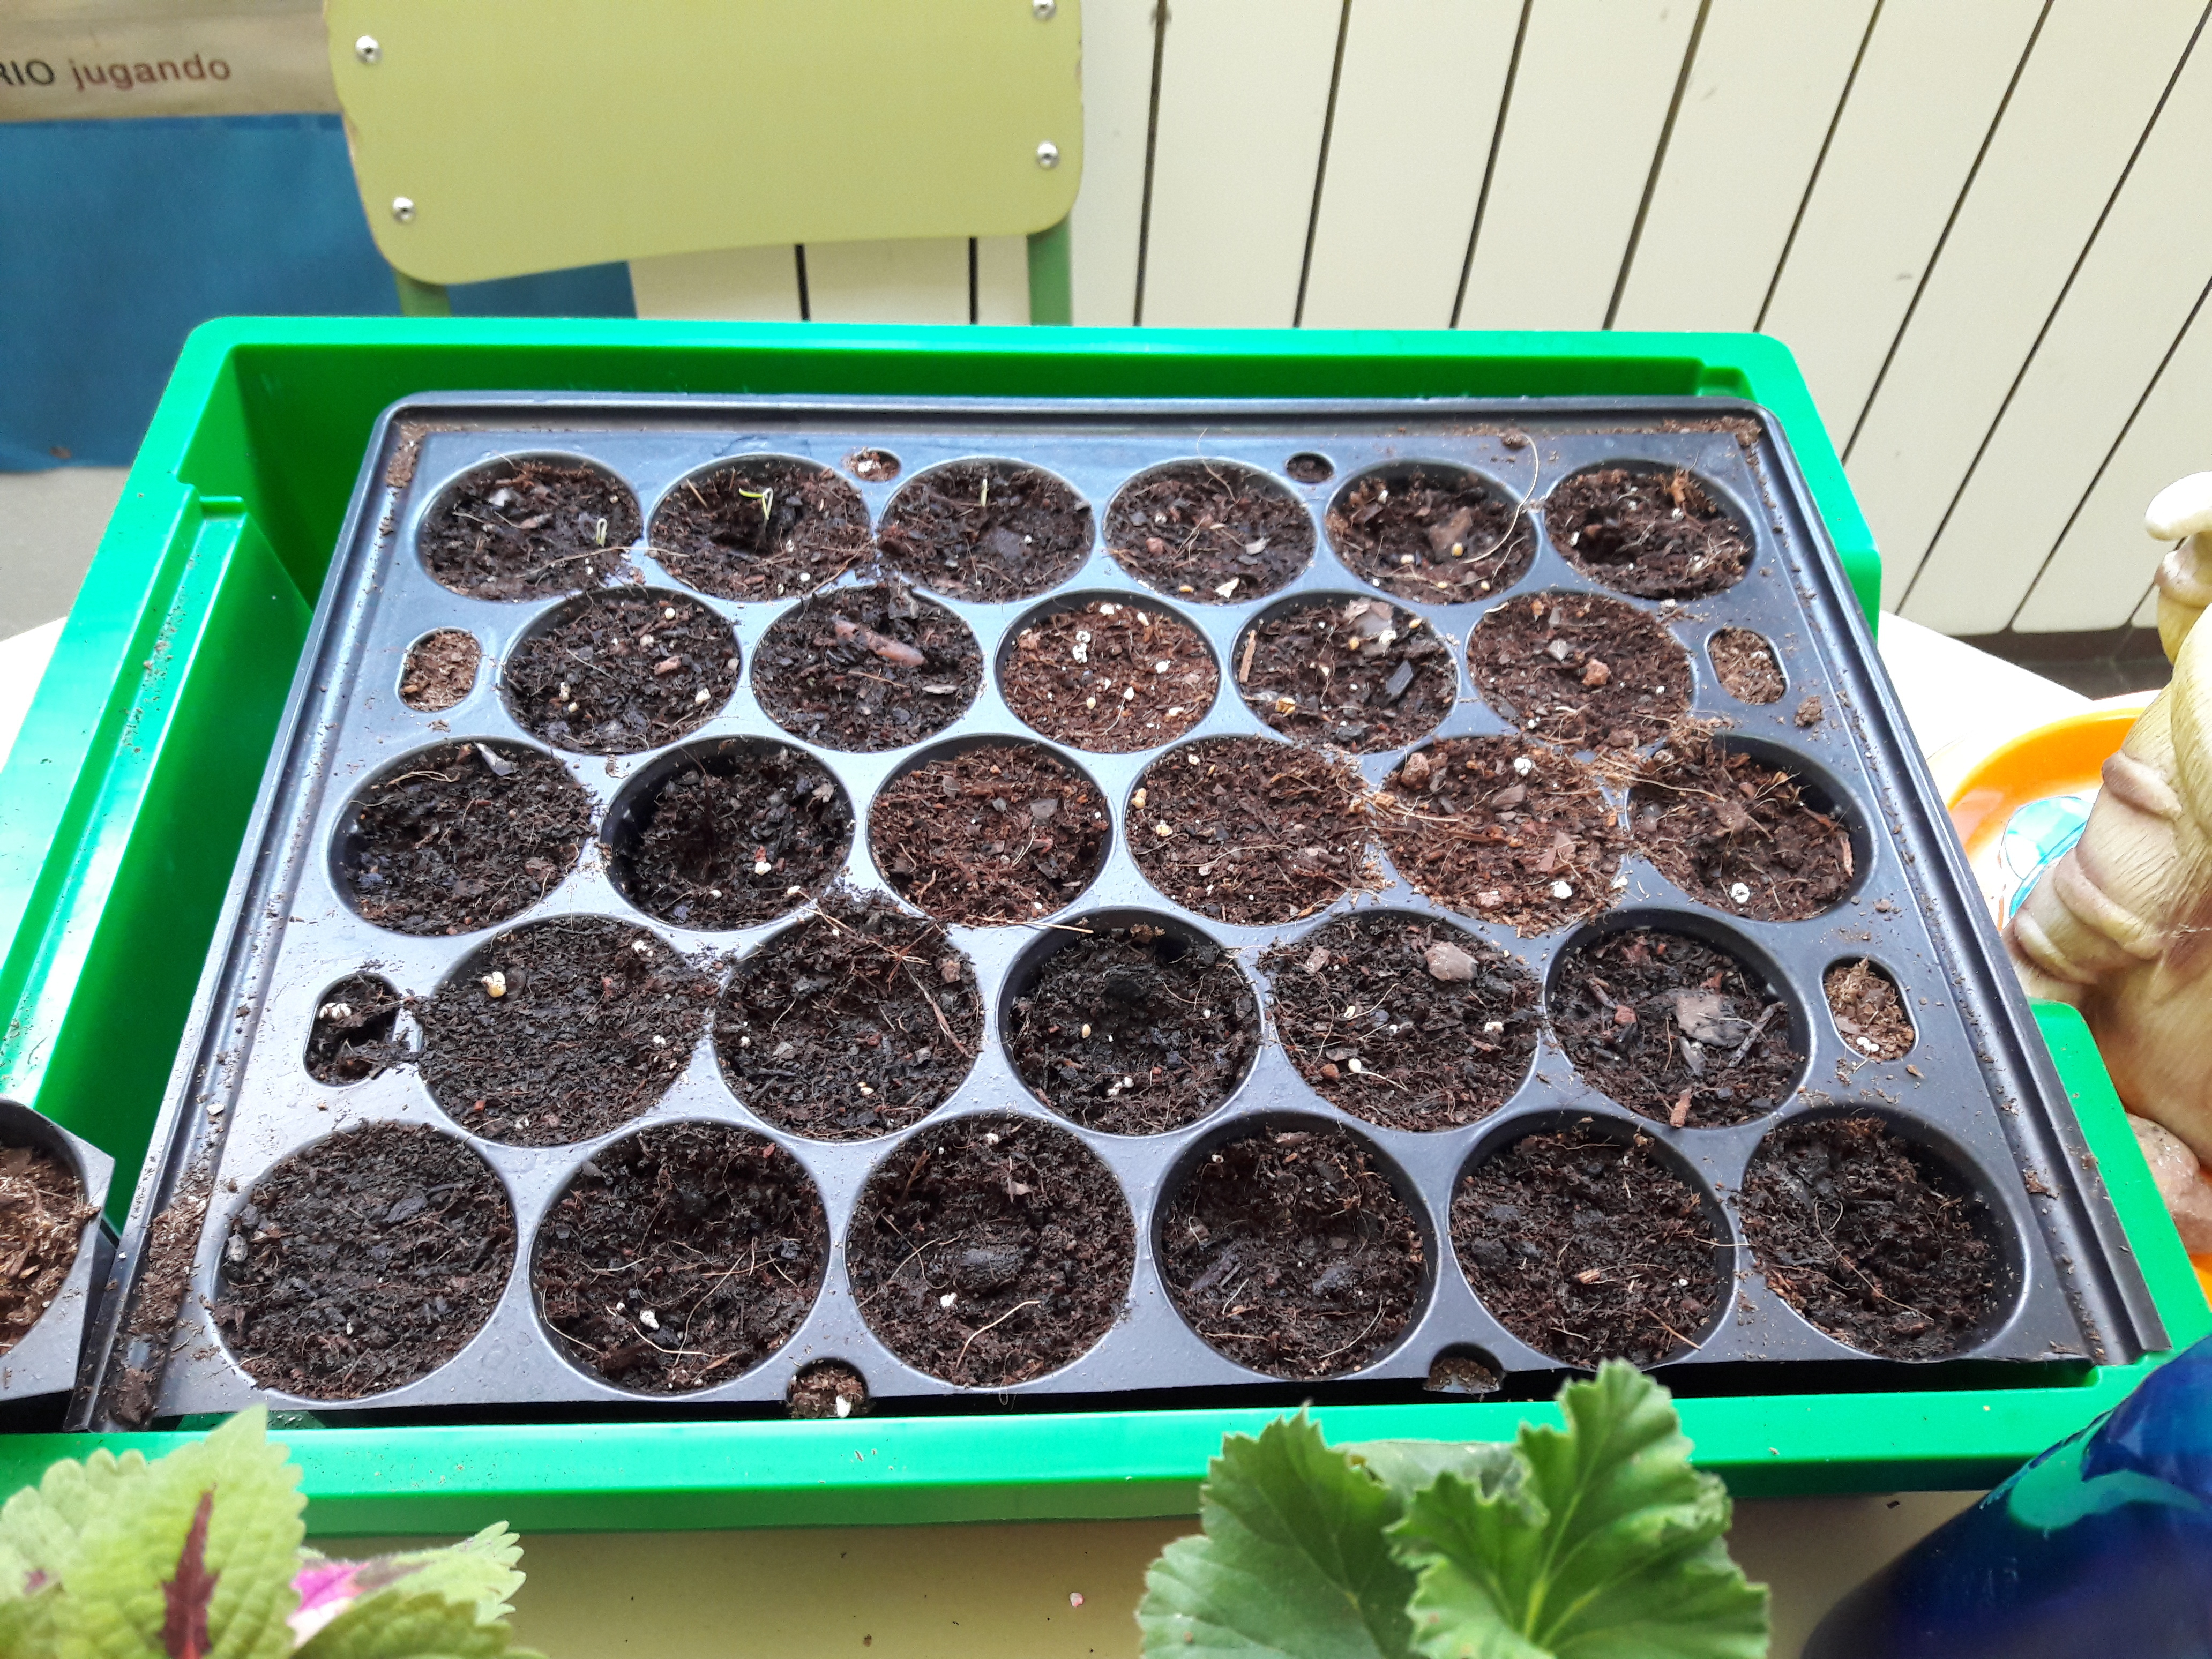 We grow plants in the classroom 5